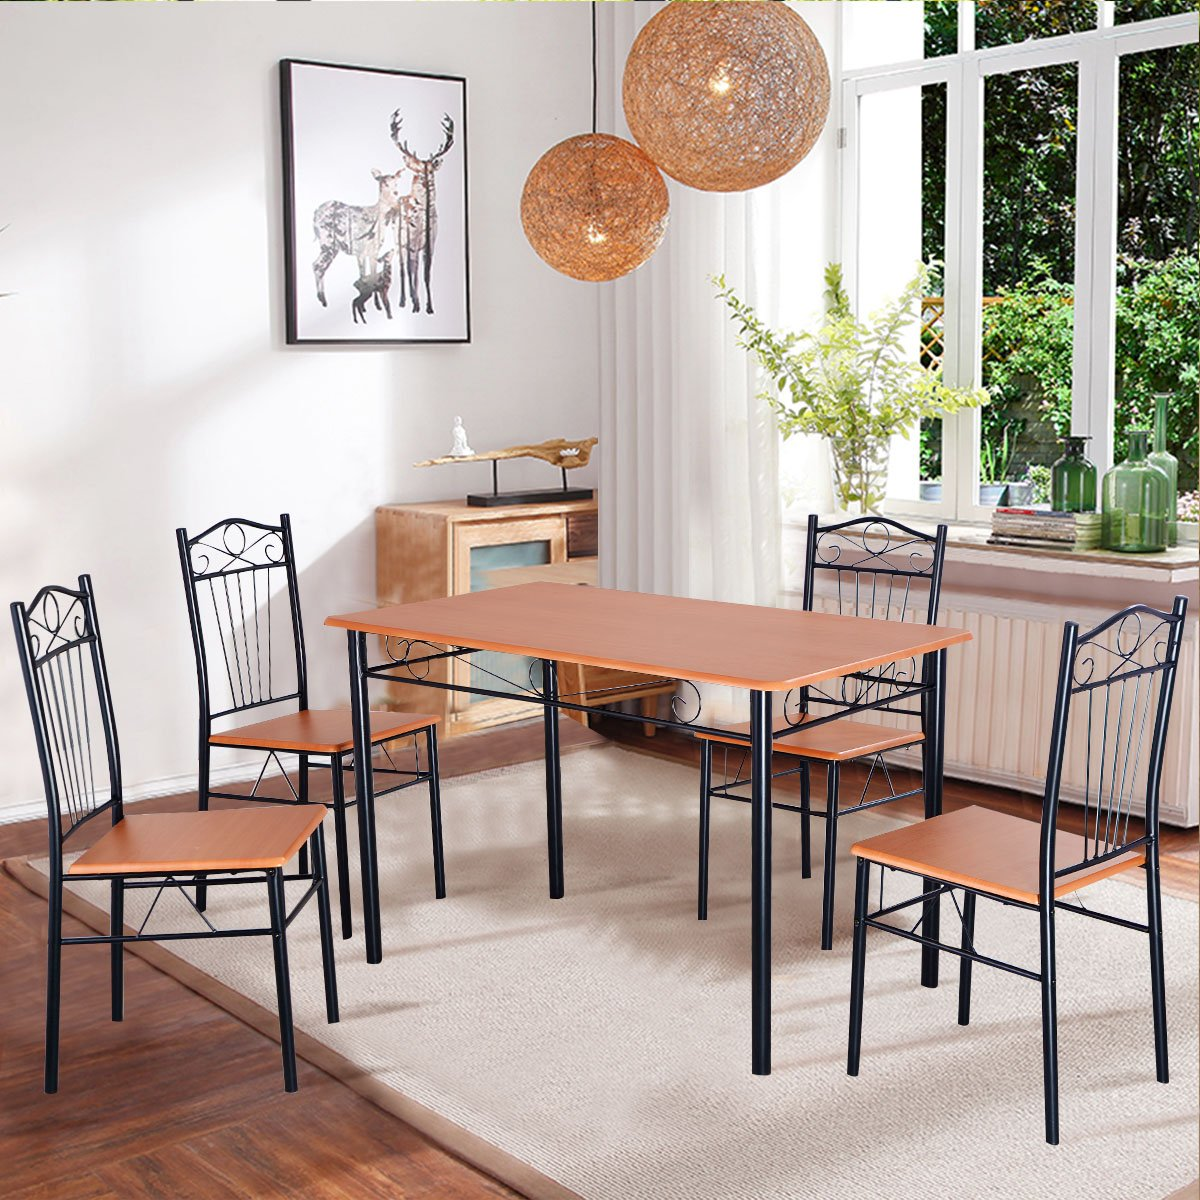 Attirant Amazon.com: Tangkula Steel Frame Dining Set Table And Chairs Kitchen Modern  Furniture Bistro Wood: Home U0026 Kitchen